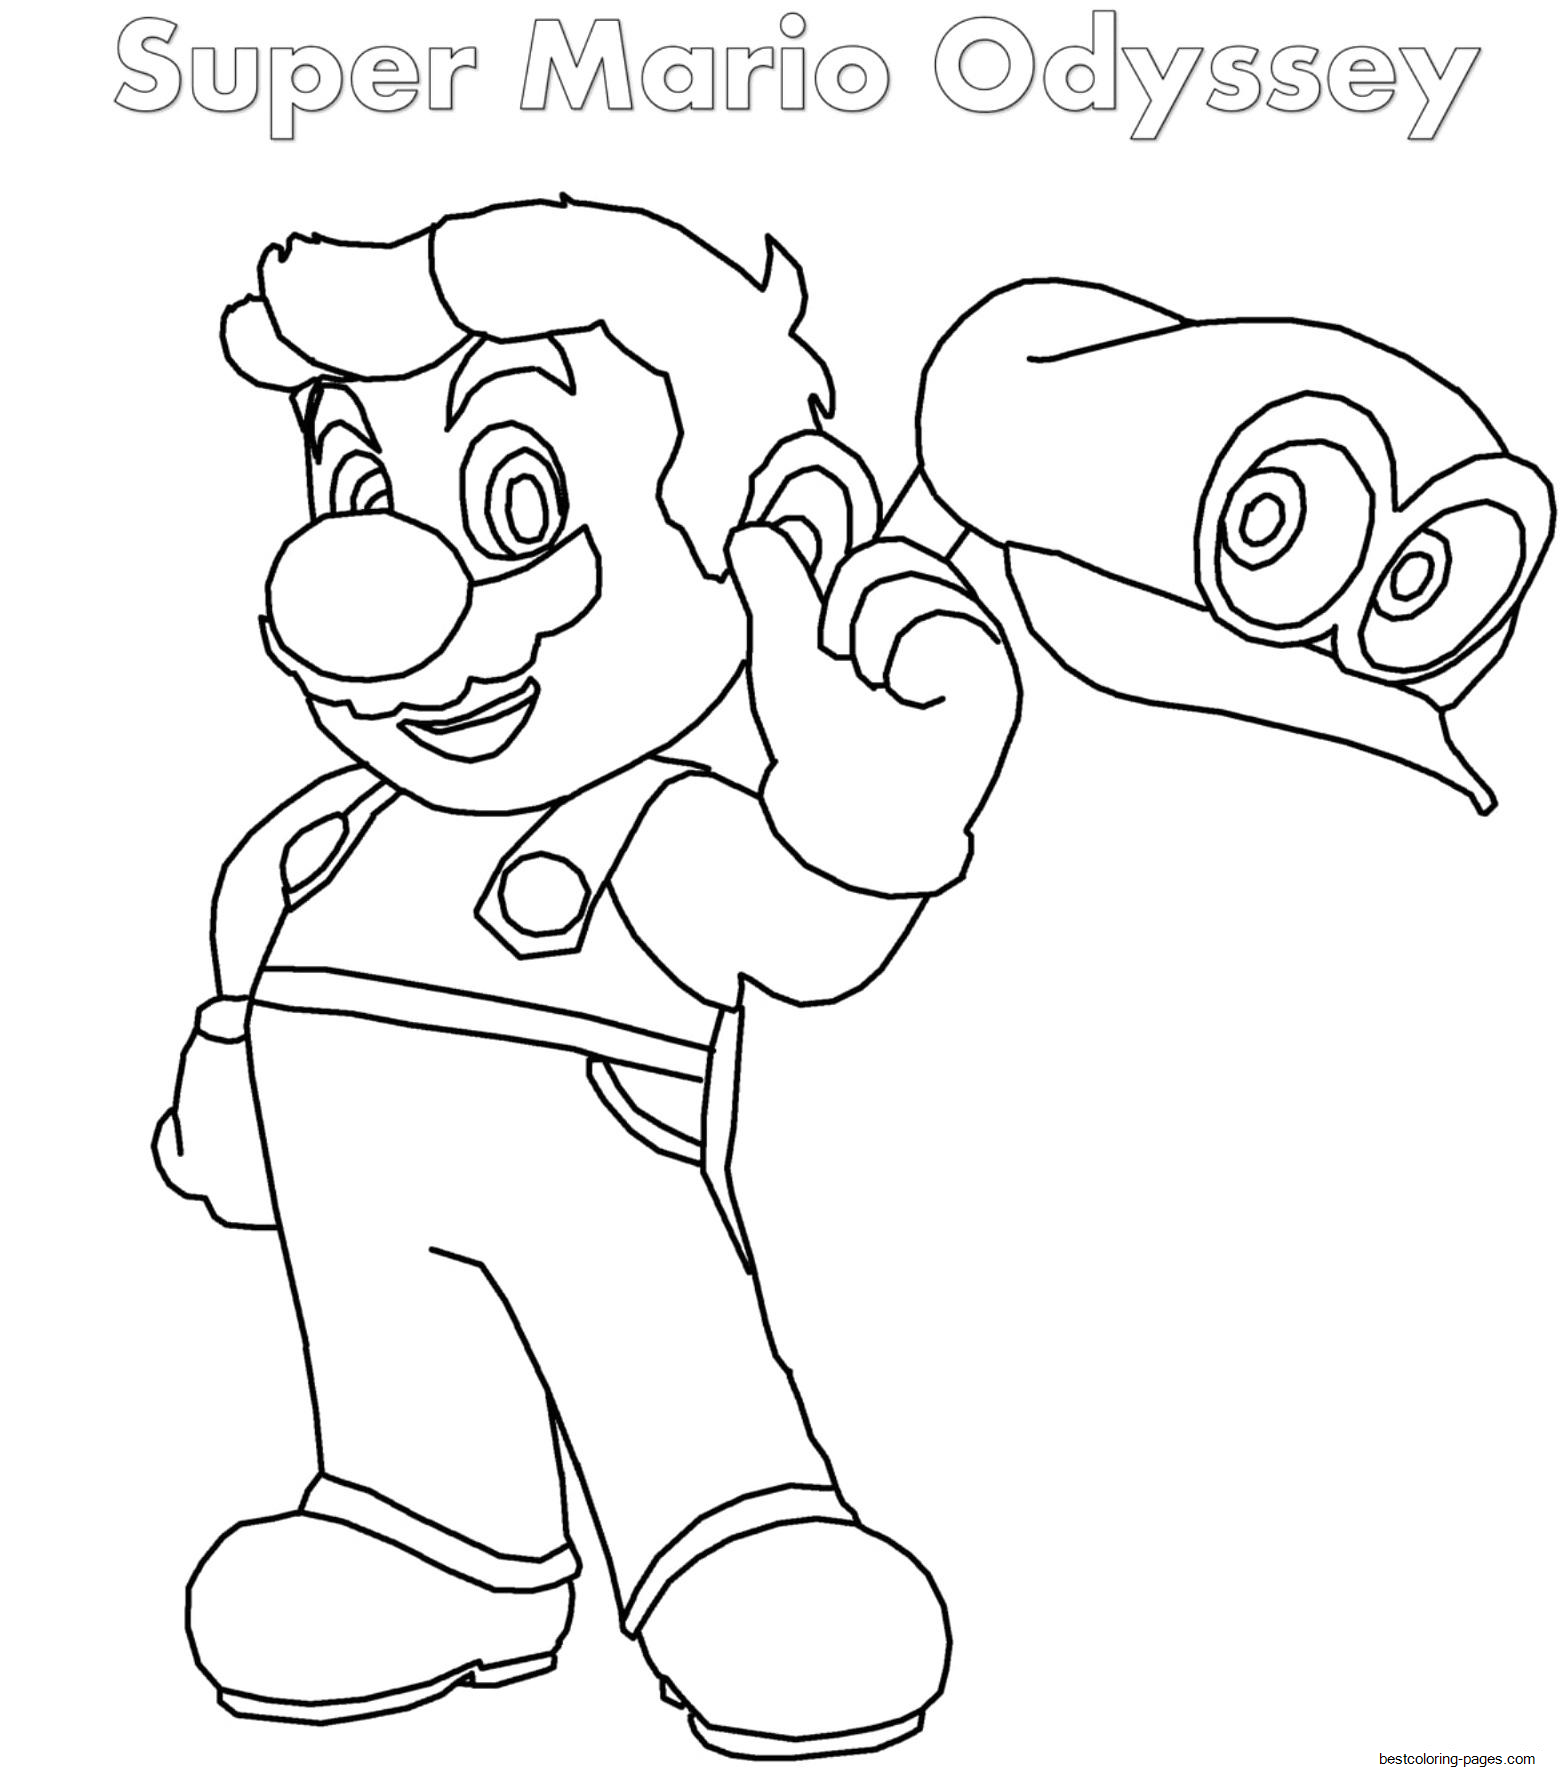 printable mario odyssey coloring pages free kids drawing page tags 41 astonishing carnotaurus mario coloring printable pages odyssey